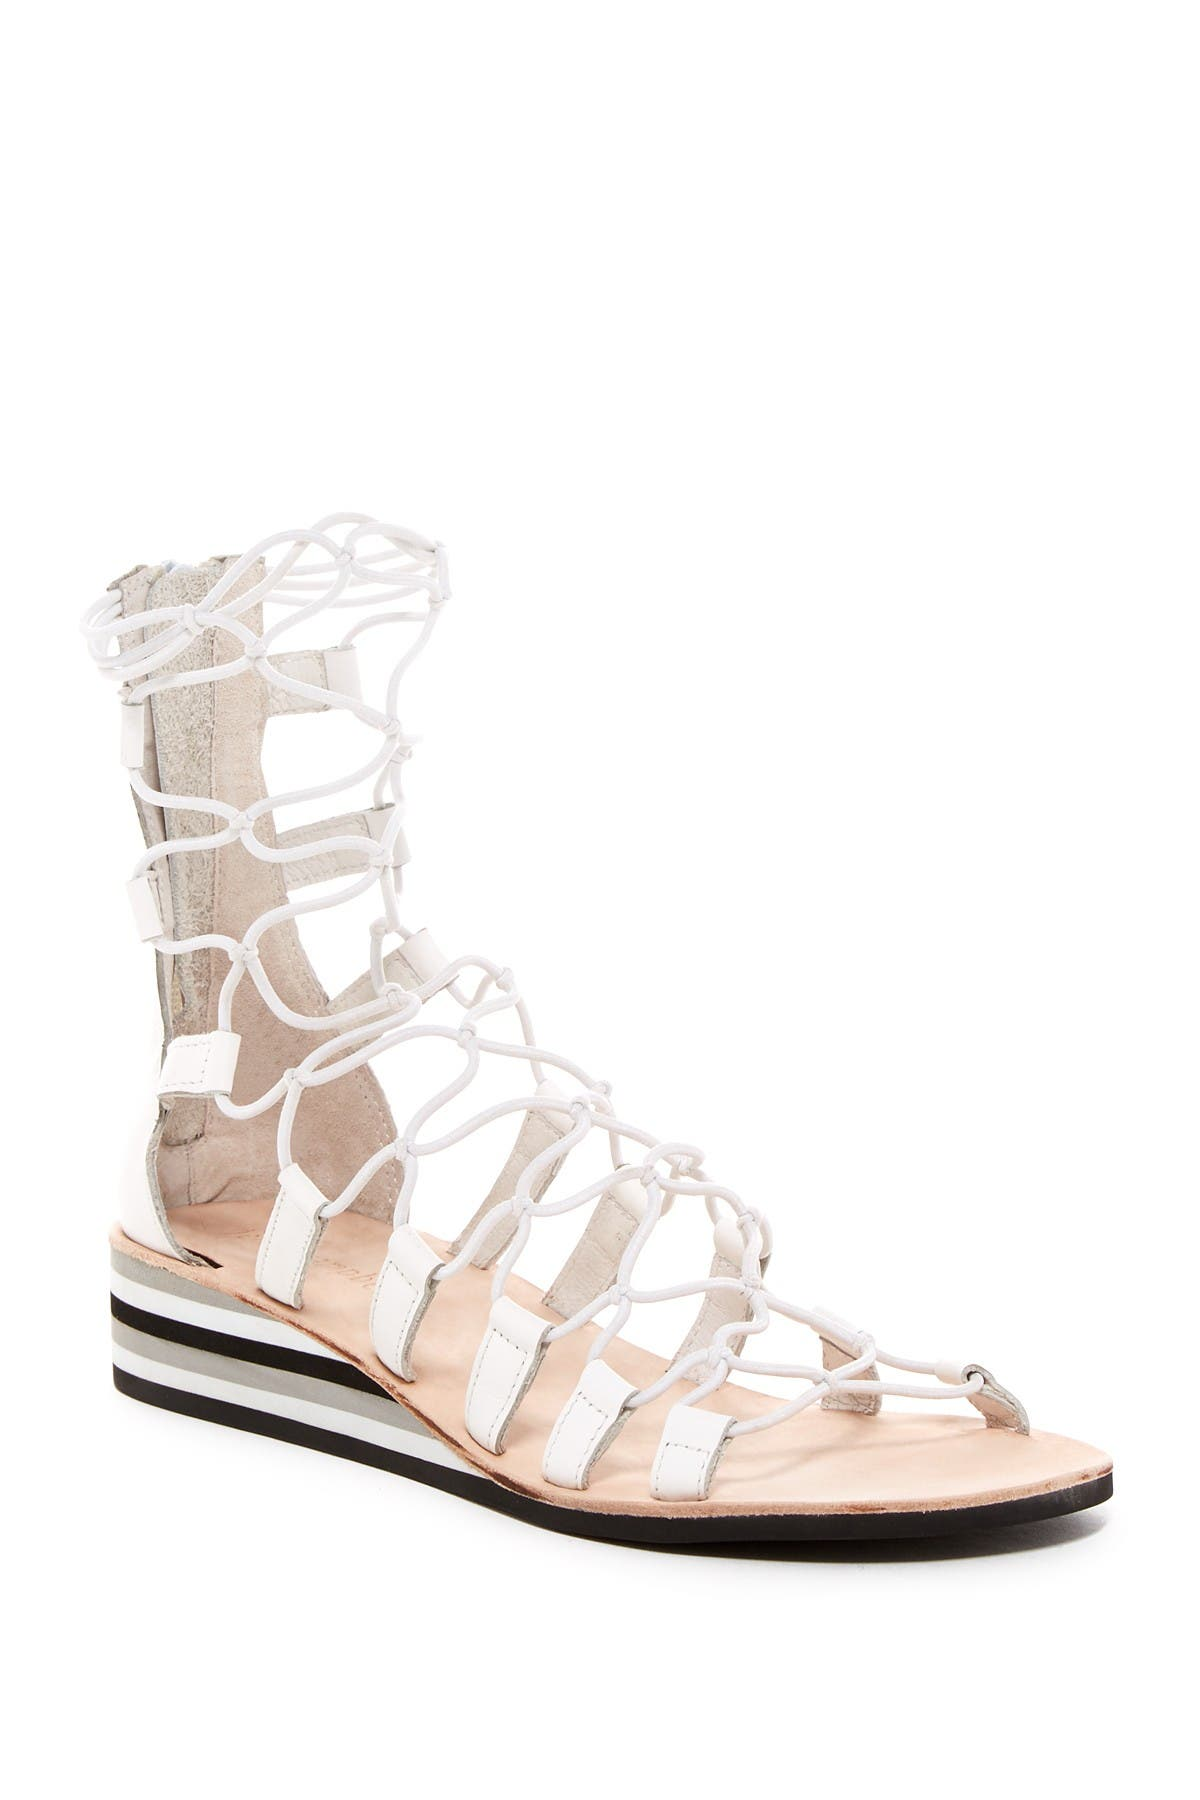 Image of Jeffrey Campbell Burma Wedge Sandal